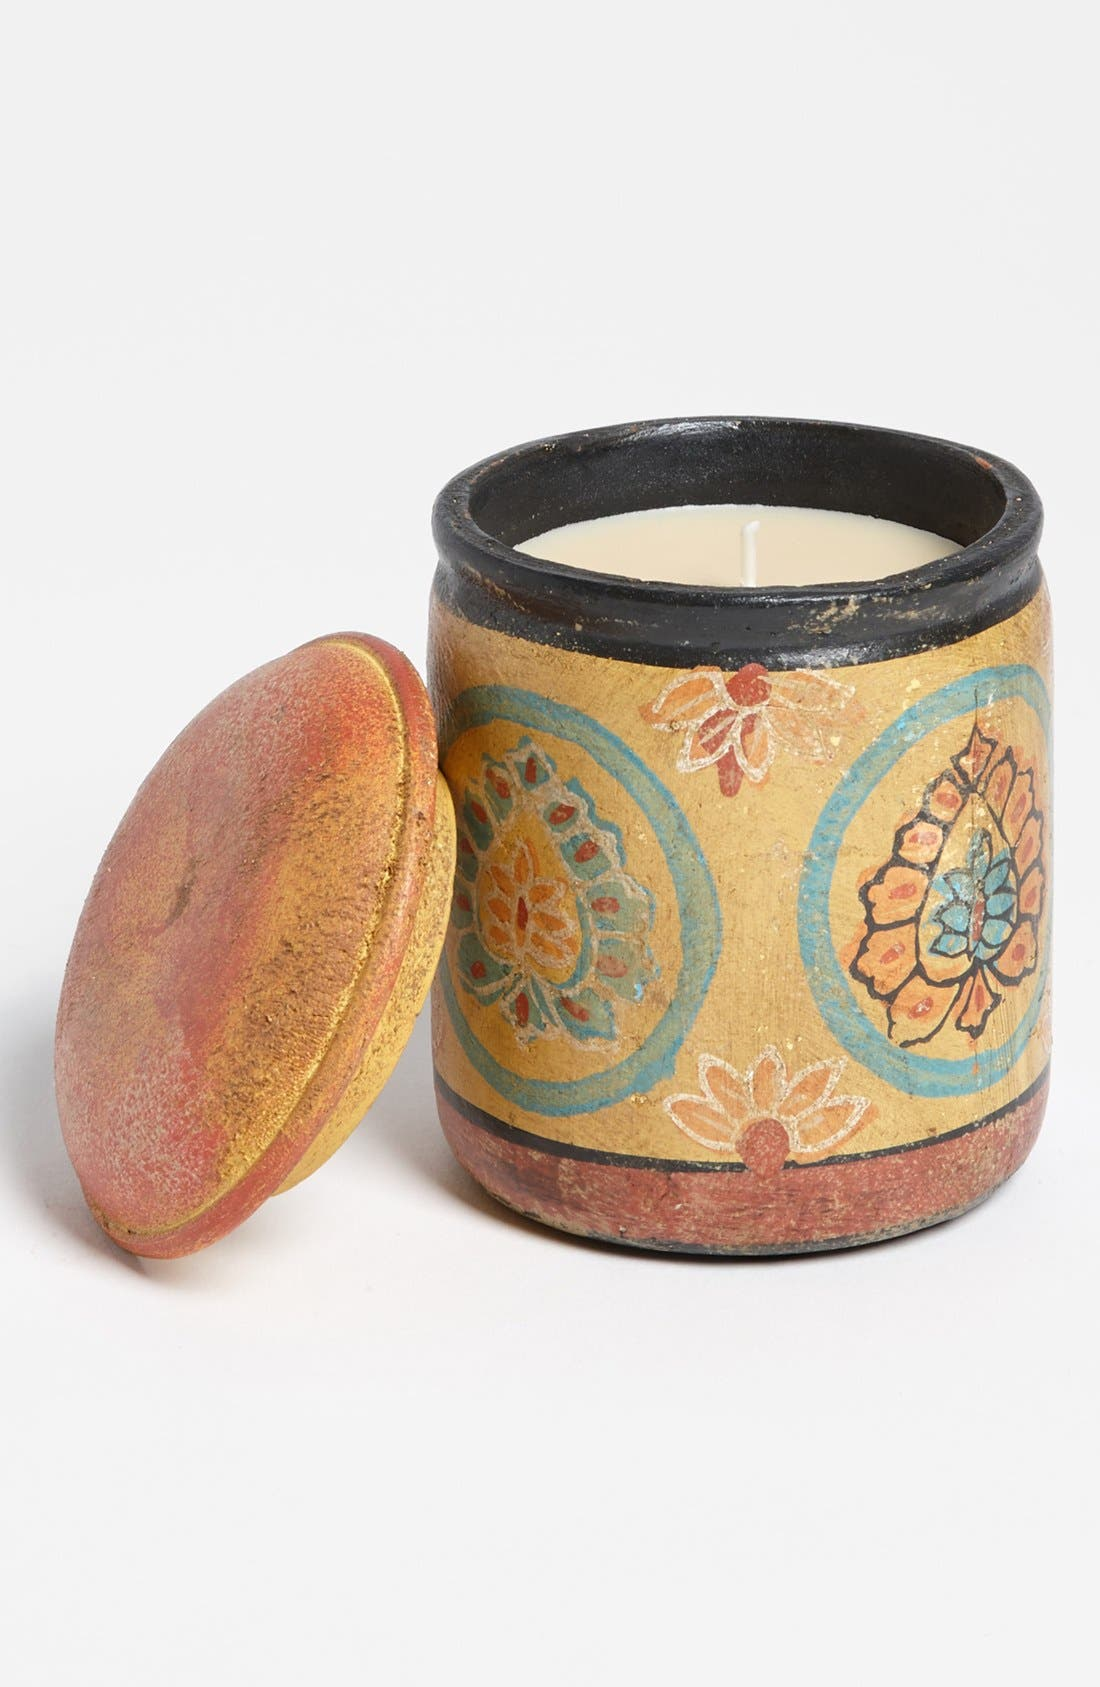 Alternate Image 1 Selected - Himalayan Trading Post Terracotta Pot Candle